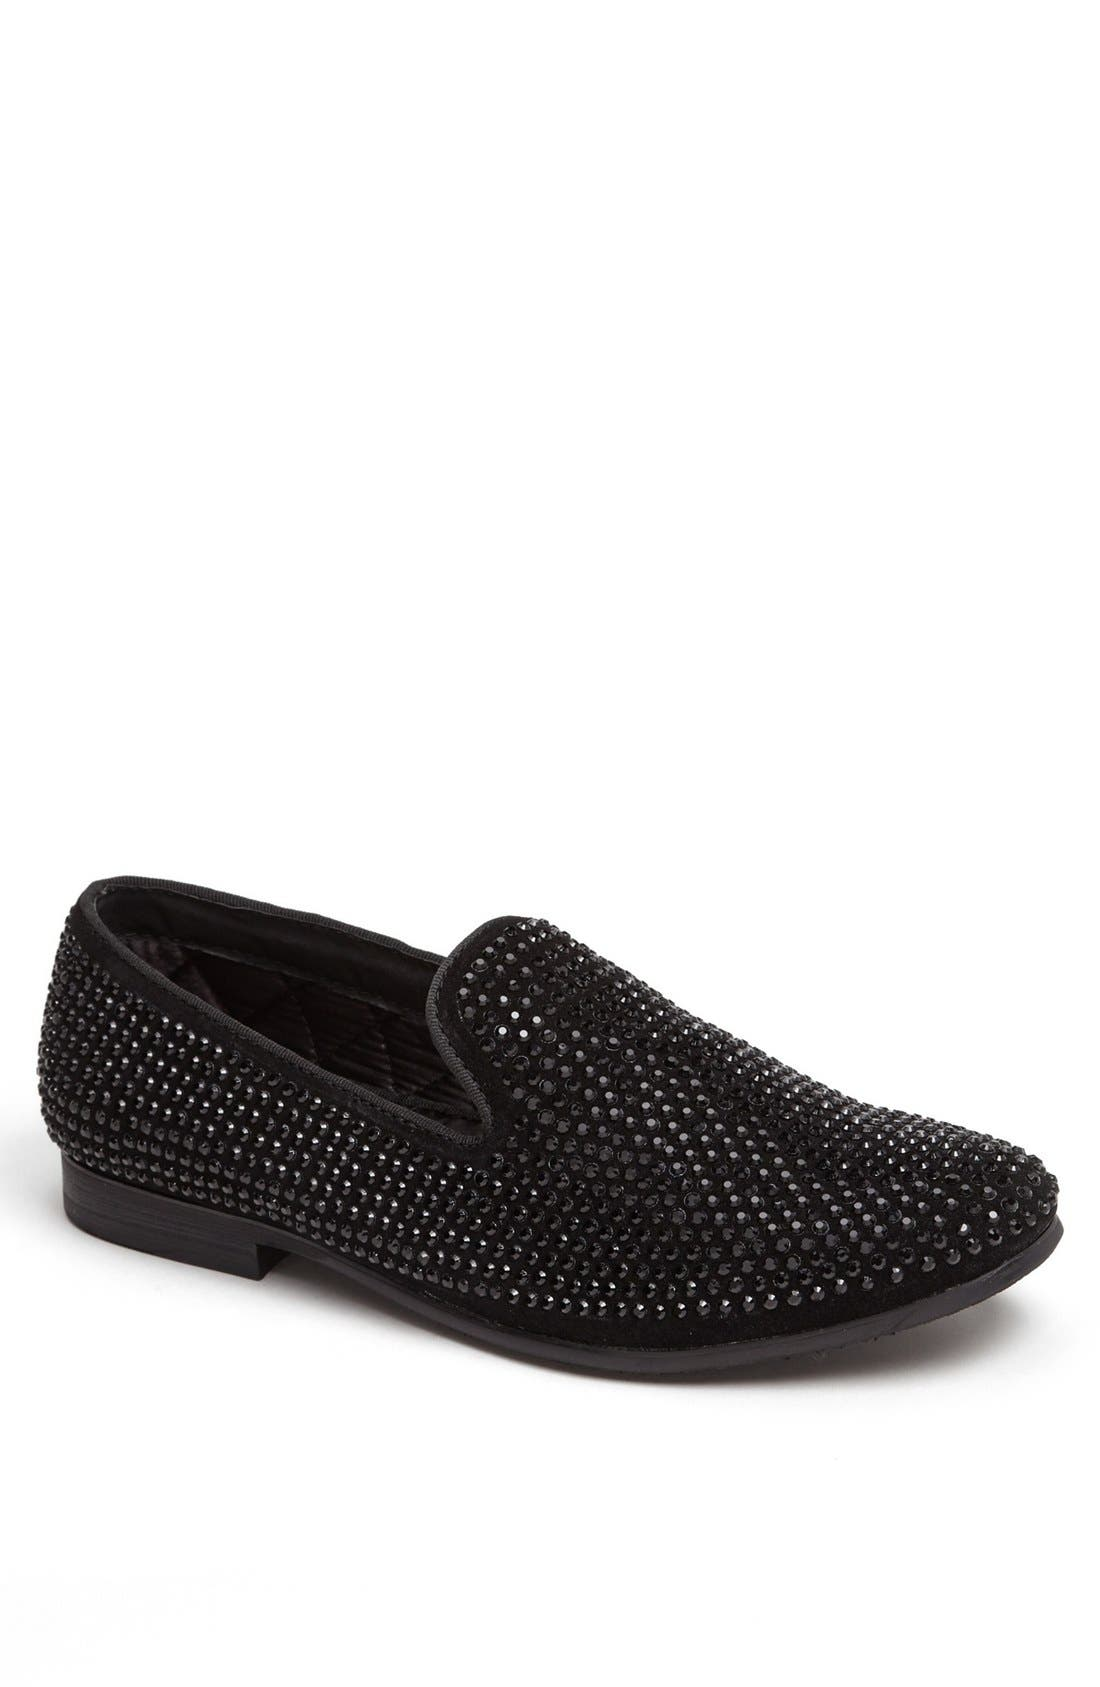 'Caviarr' Slip-On,                             Main thumbnail 1, color,                             BLACK RHINESTONES